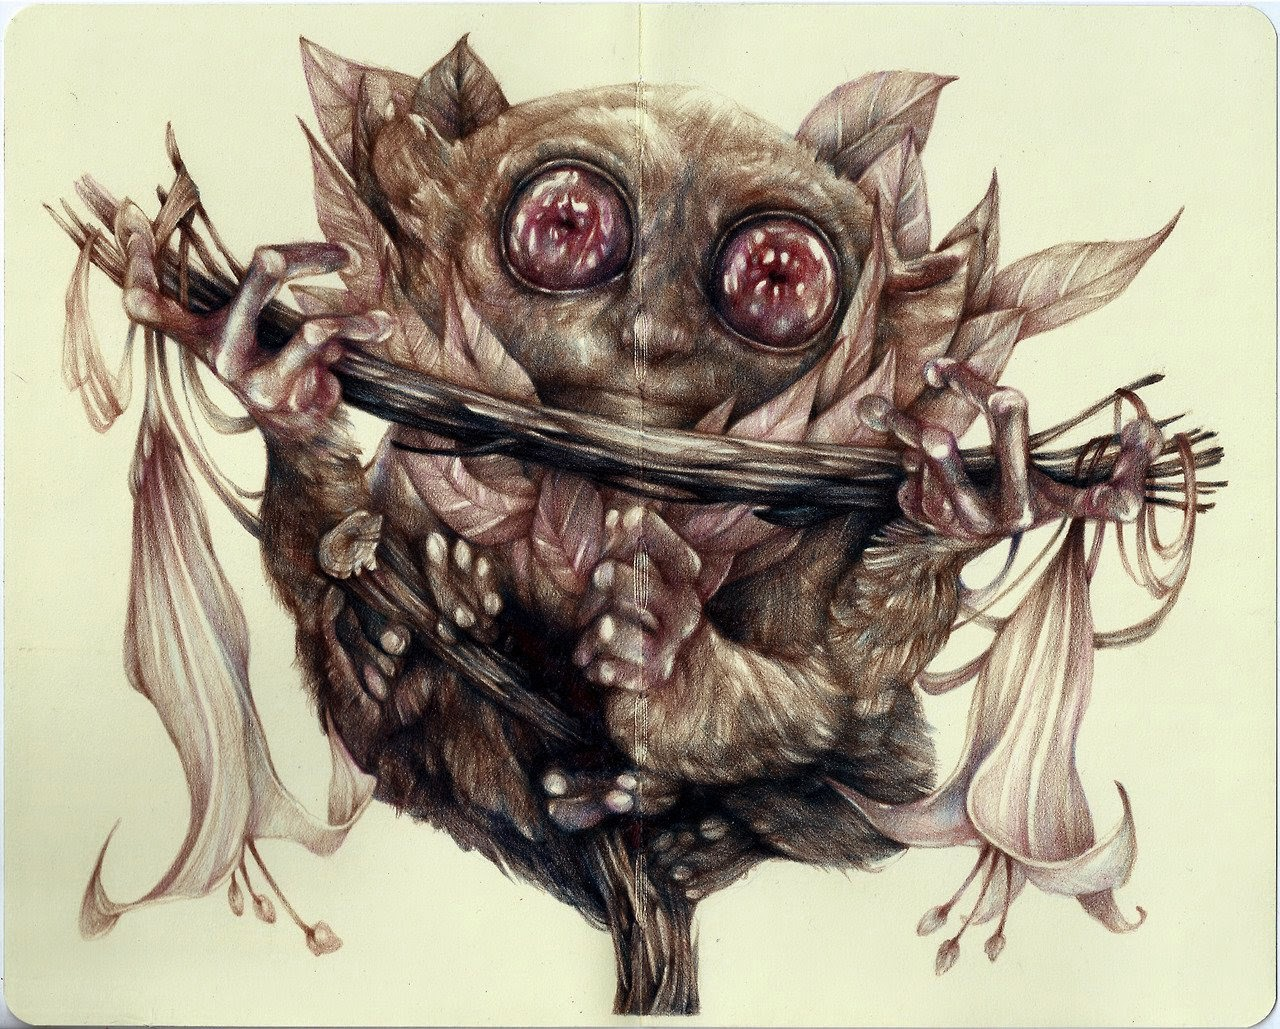 08-Marco-Mazzoni-Surreal-Animal-Drawings-www-designstack-co